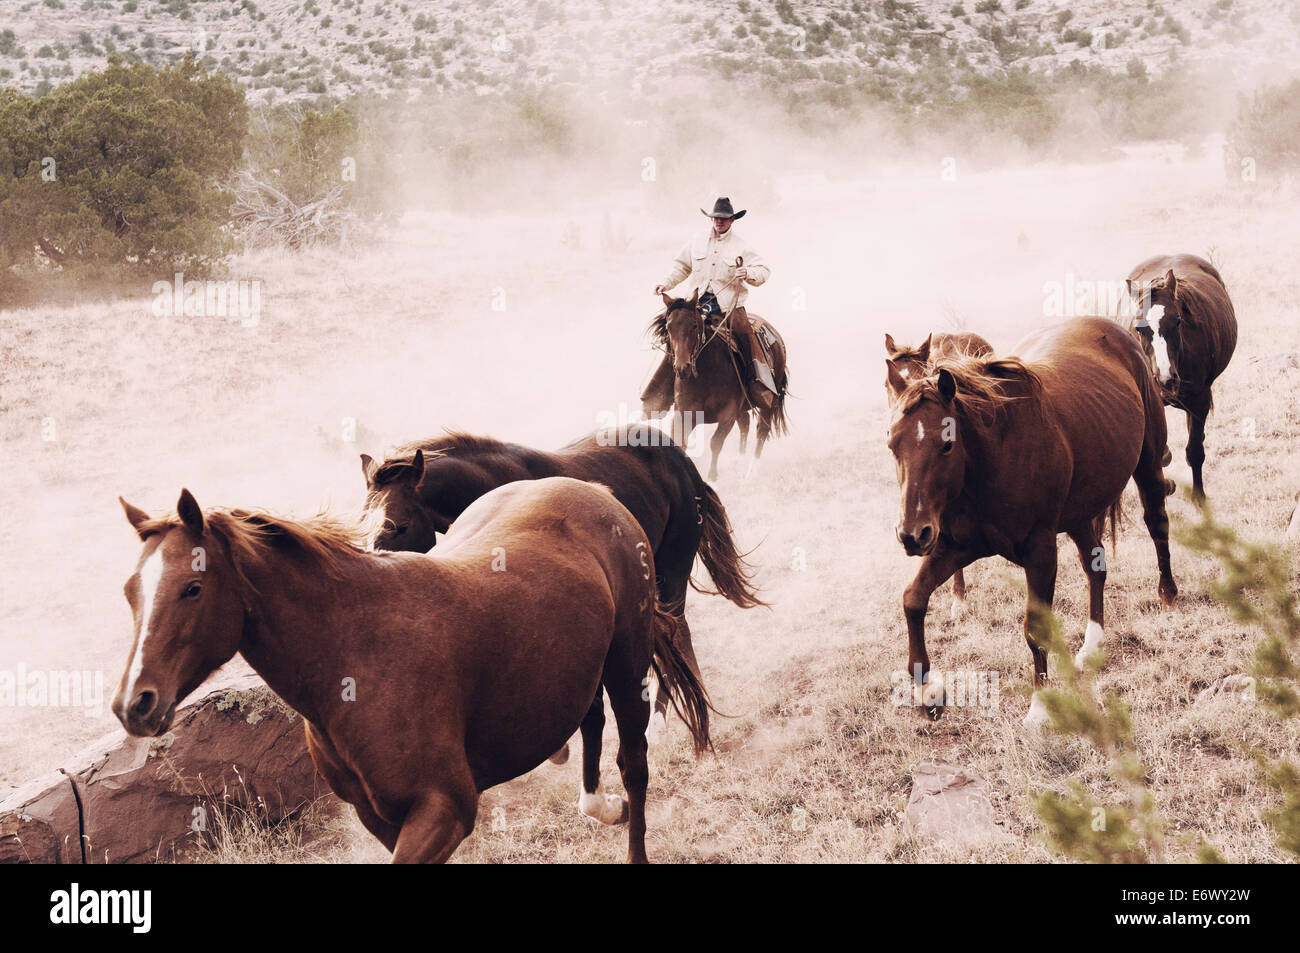 Cowboy runs herd of brood mare quarter horses on a New Mexico ranch toward the camera kicking up dust - Stock Image